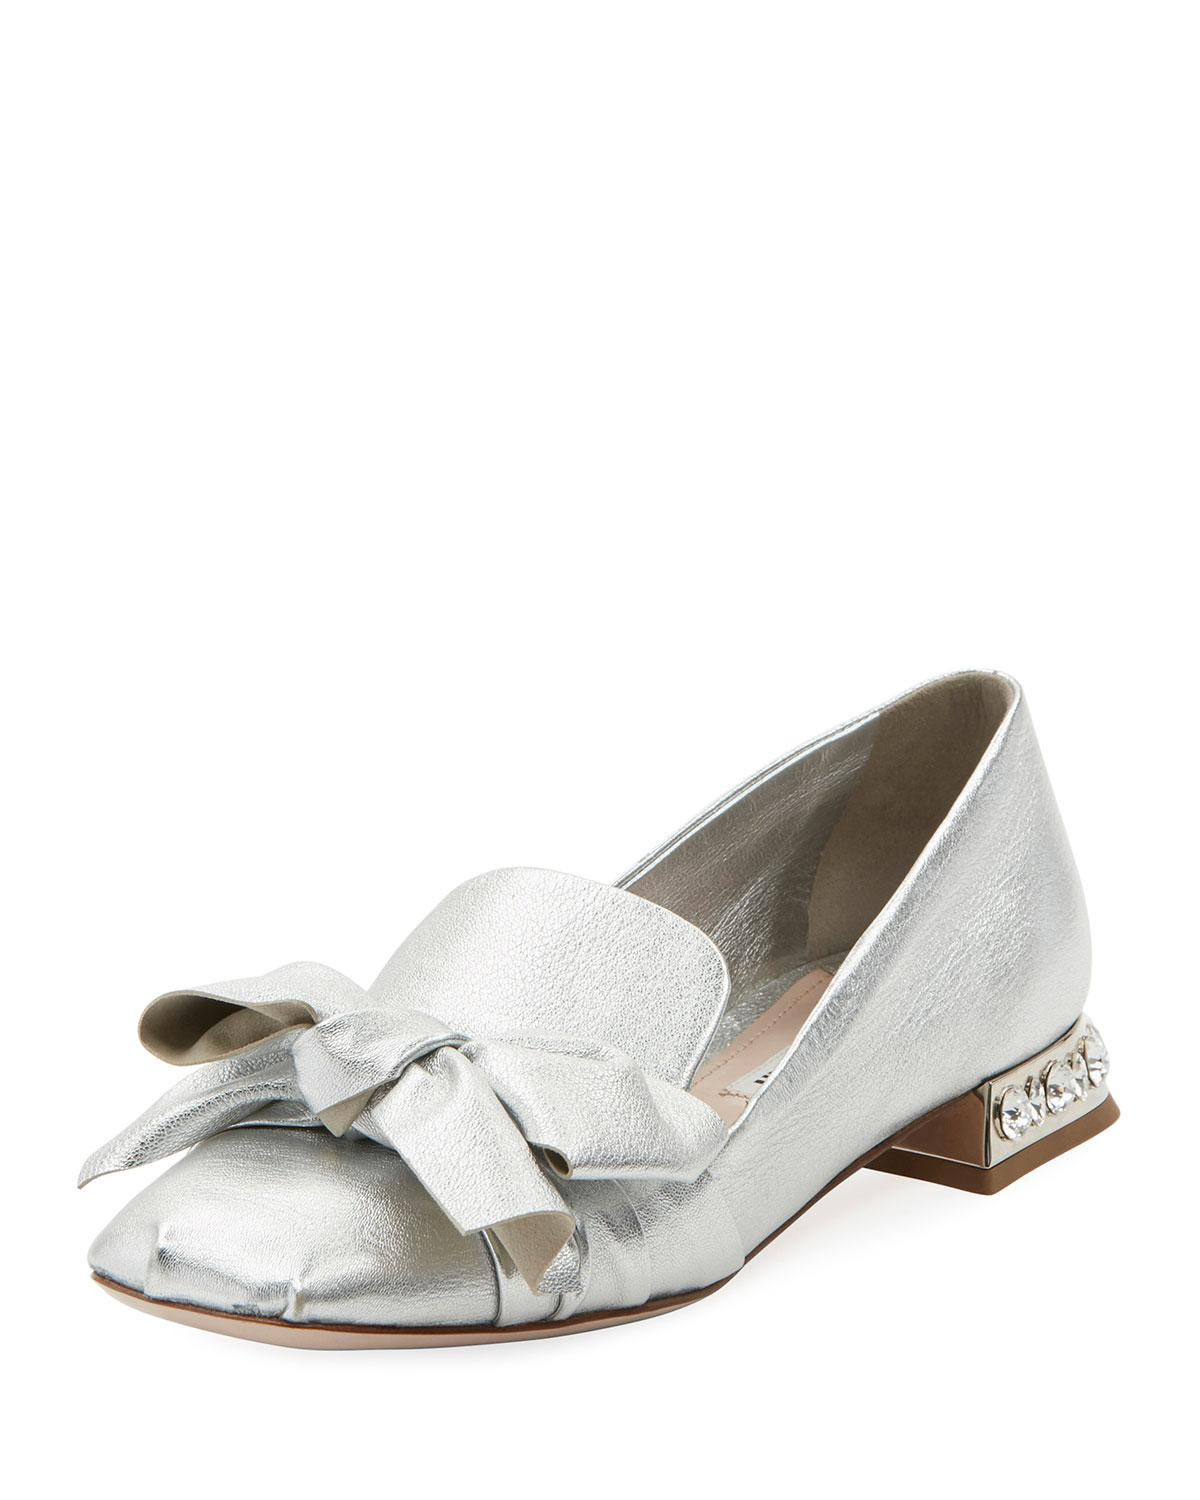 6c91b8d96 Lyst - Miu Miu Leather Smoking Slippers in Metallic - Save 18%